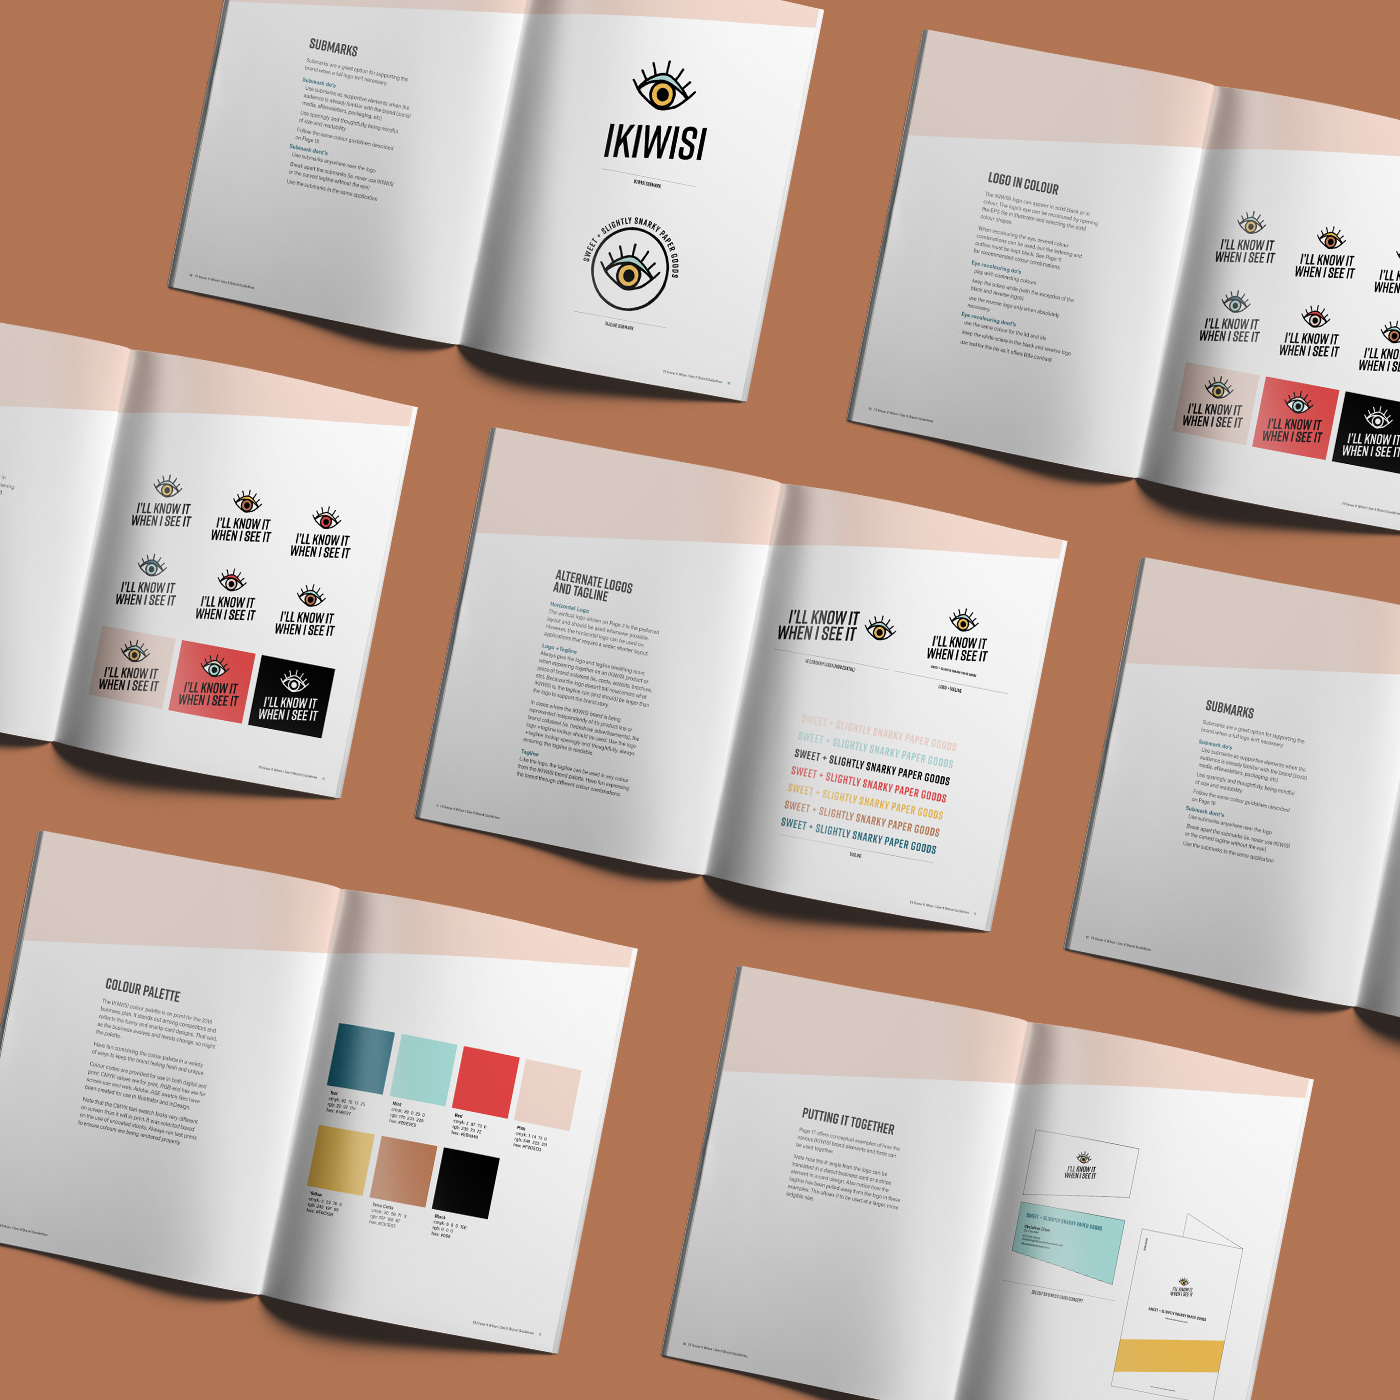 Brand design and social media strategy and templates for Vancouver-based paper goods company, I'll Know It When I see It. Designed by Flipside Creative.